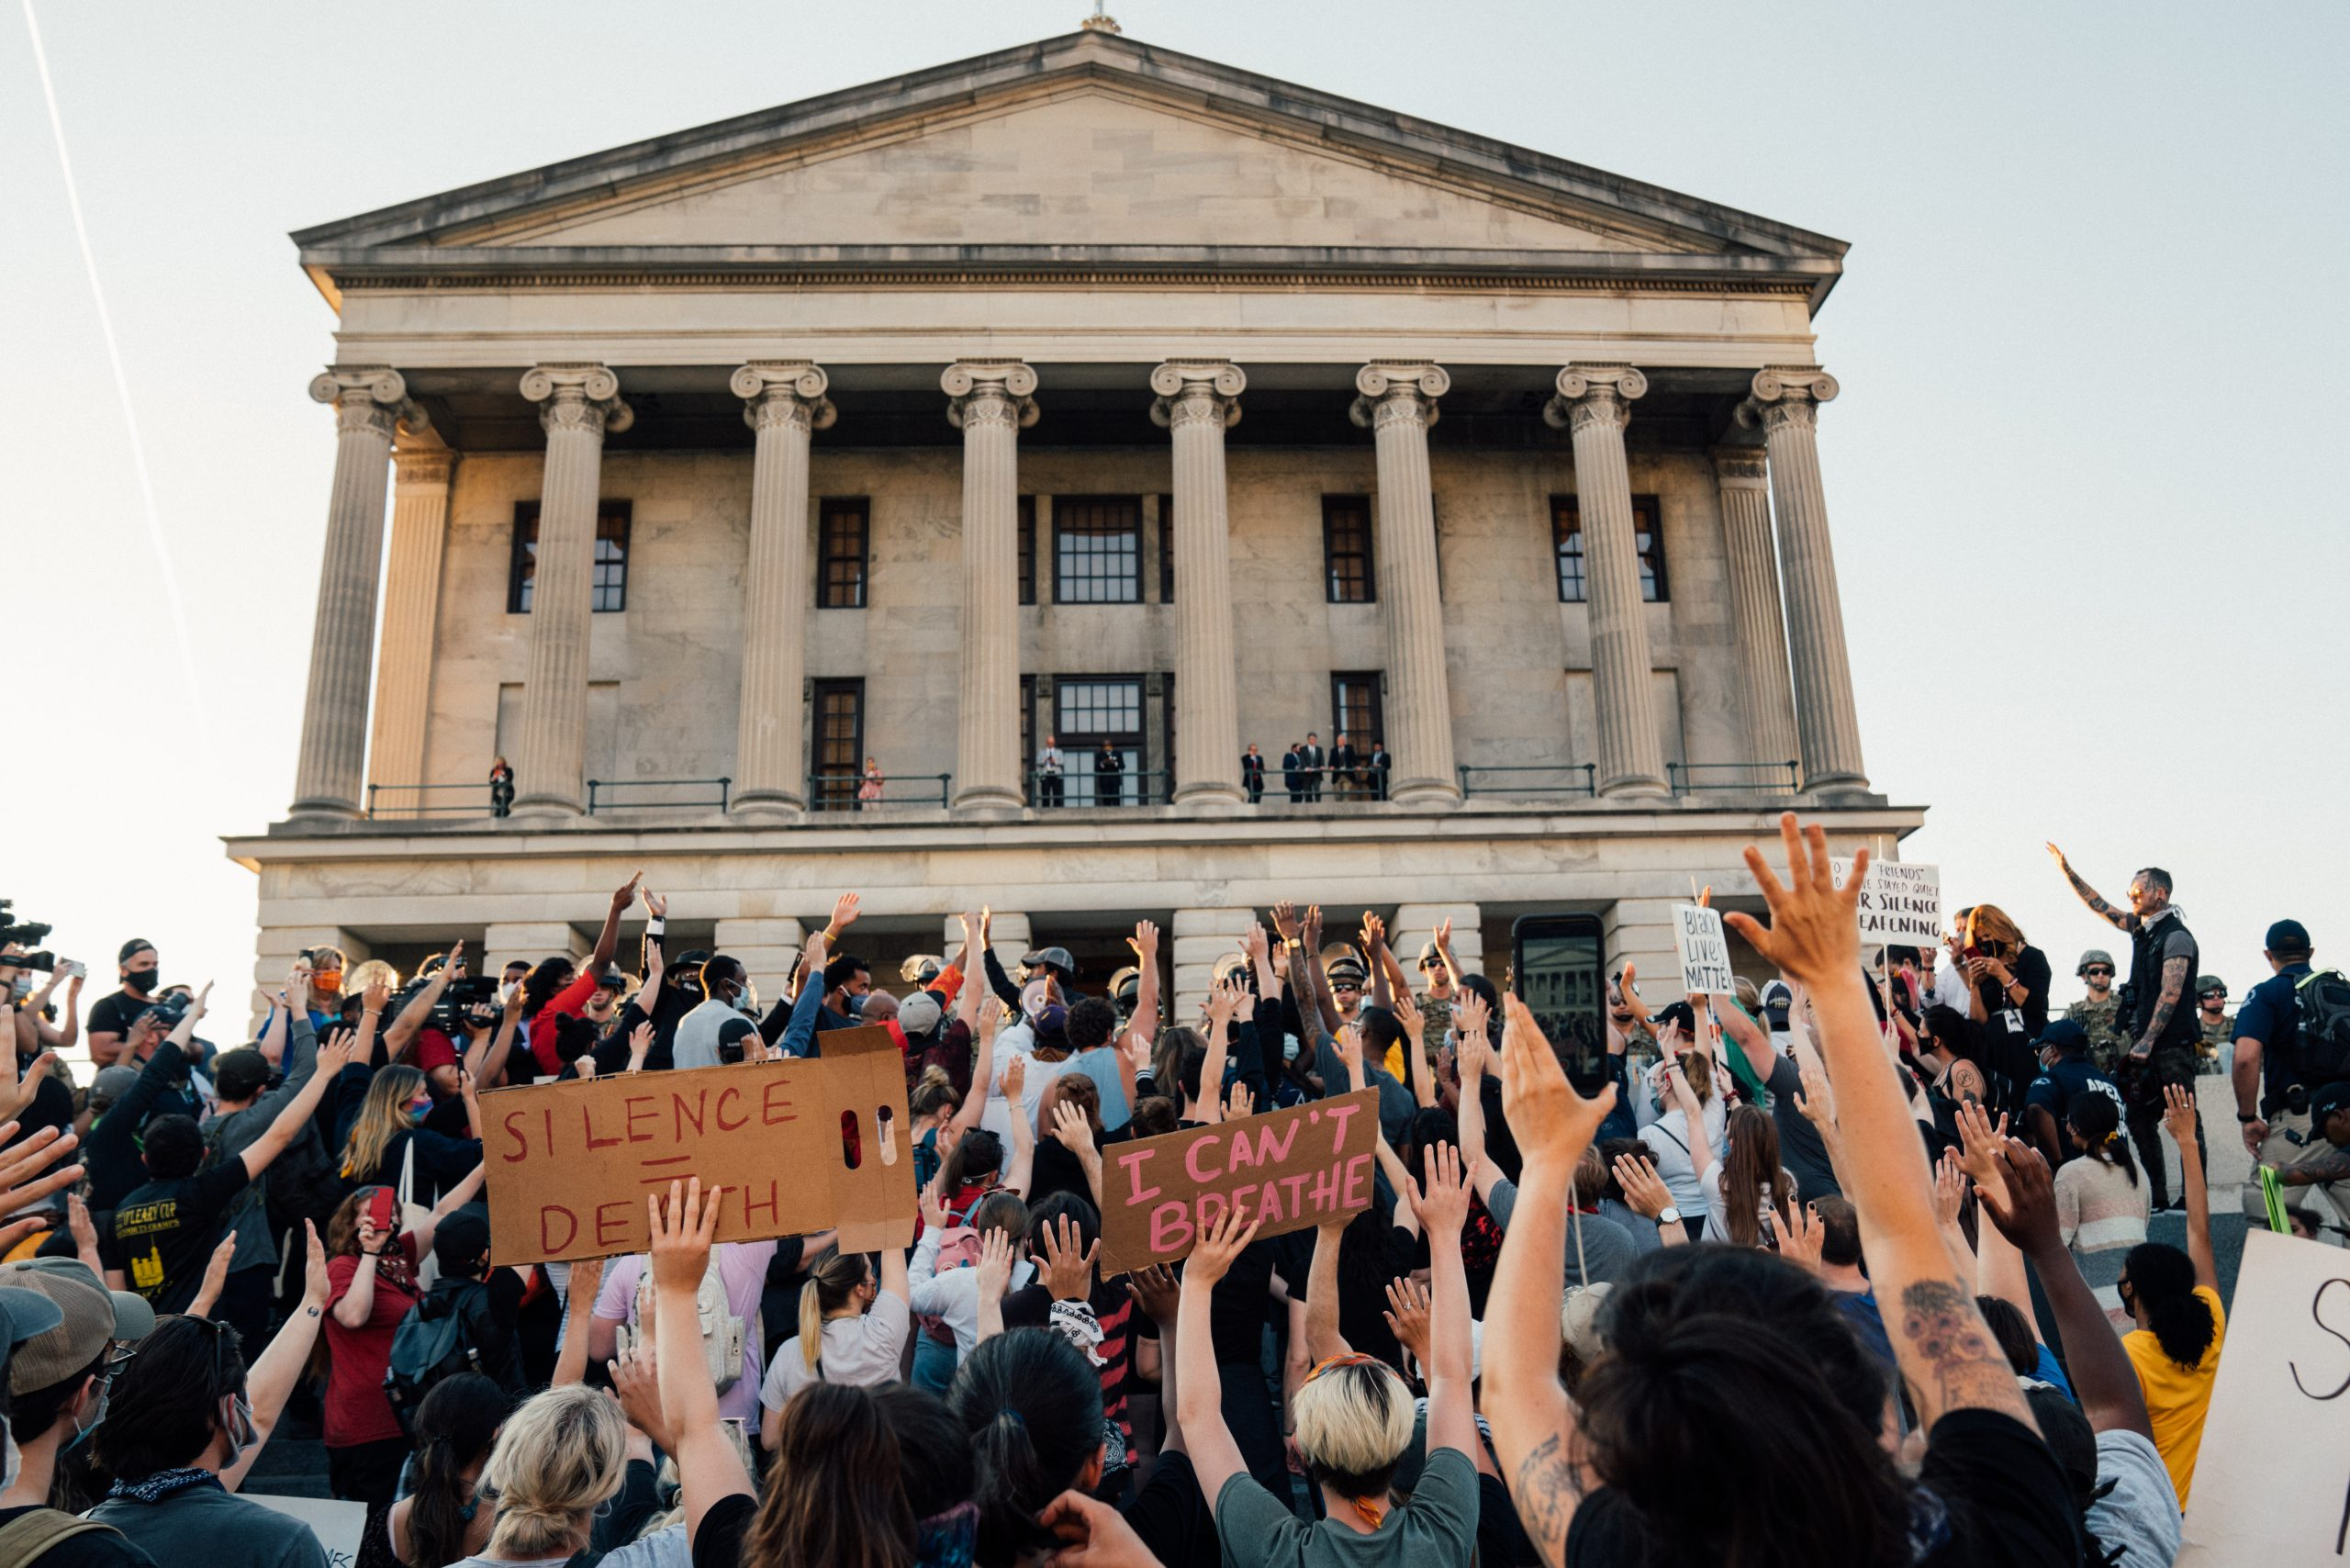 Nashville, Tenn., June 1 - The vigil crowd on the steps of the Tennessee State Capitol. (Photo: Alex Kent)